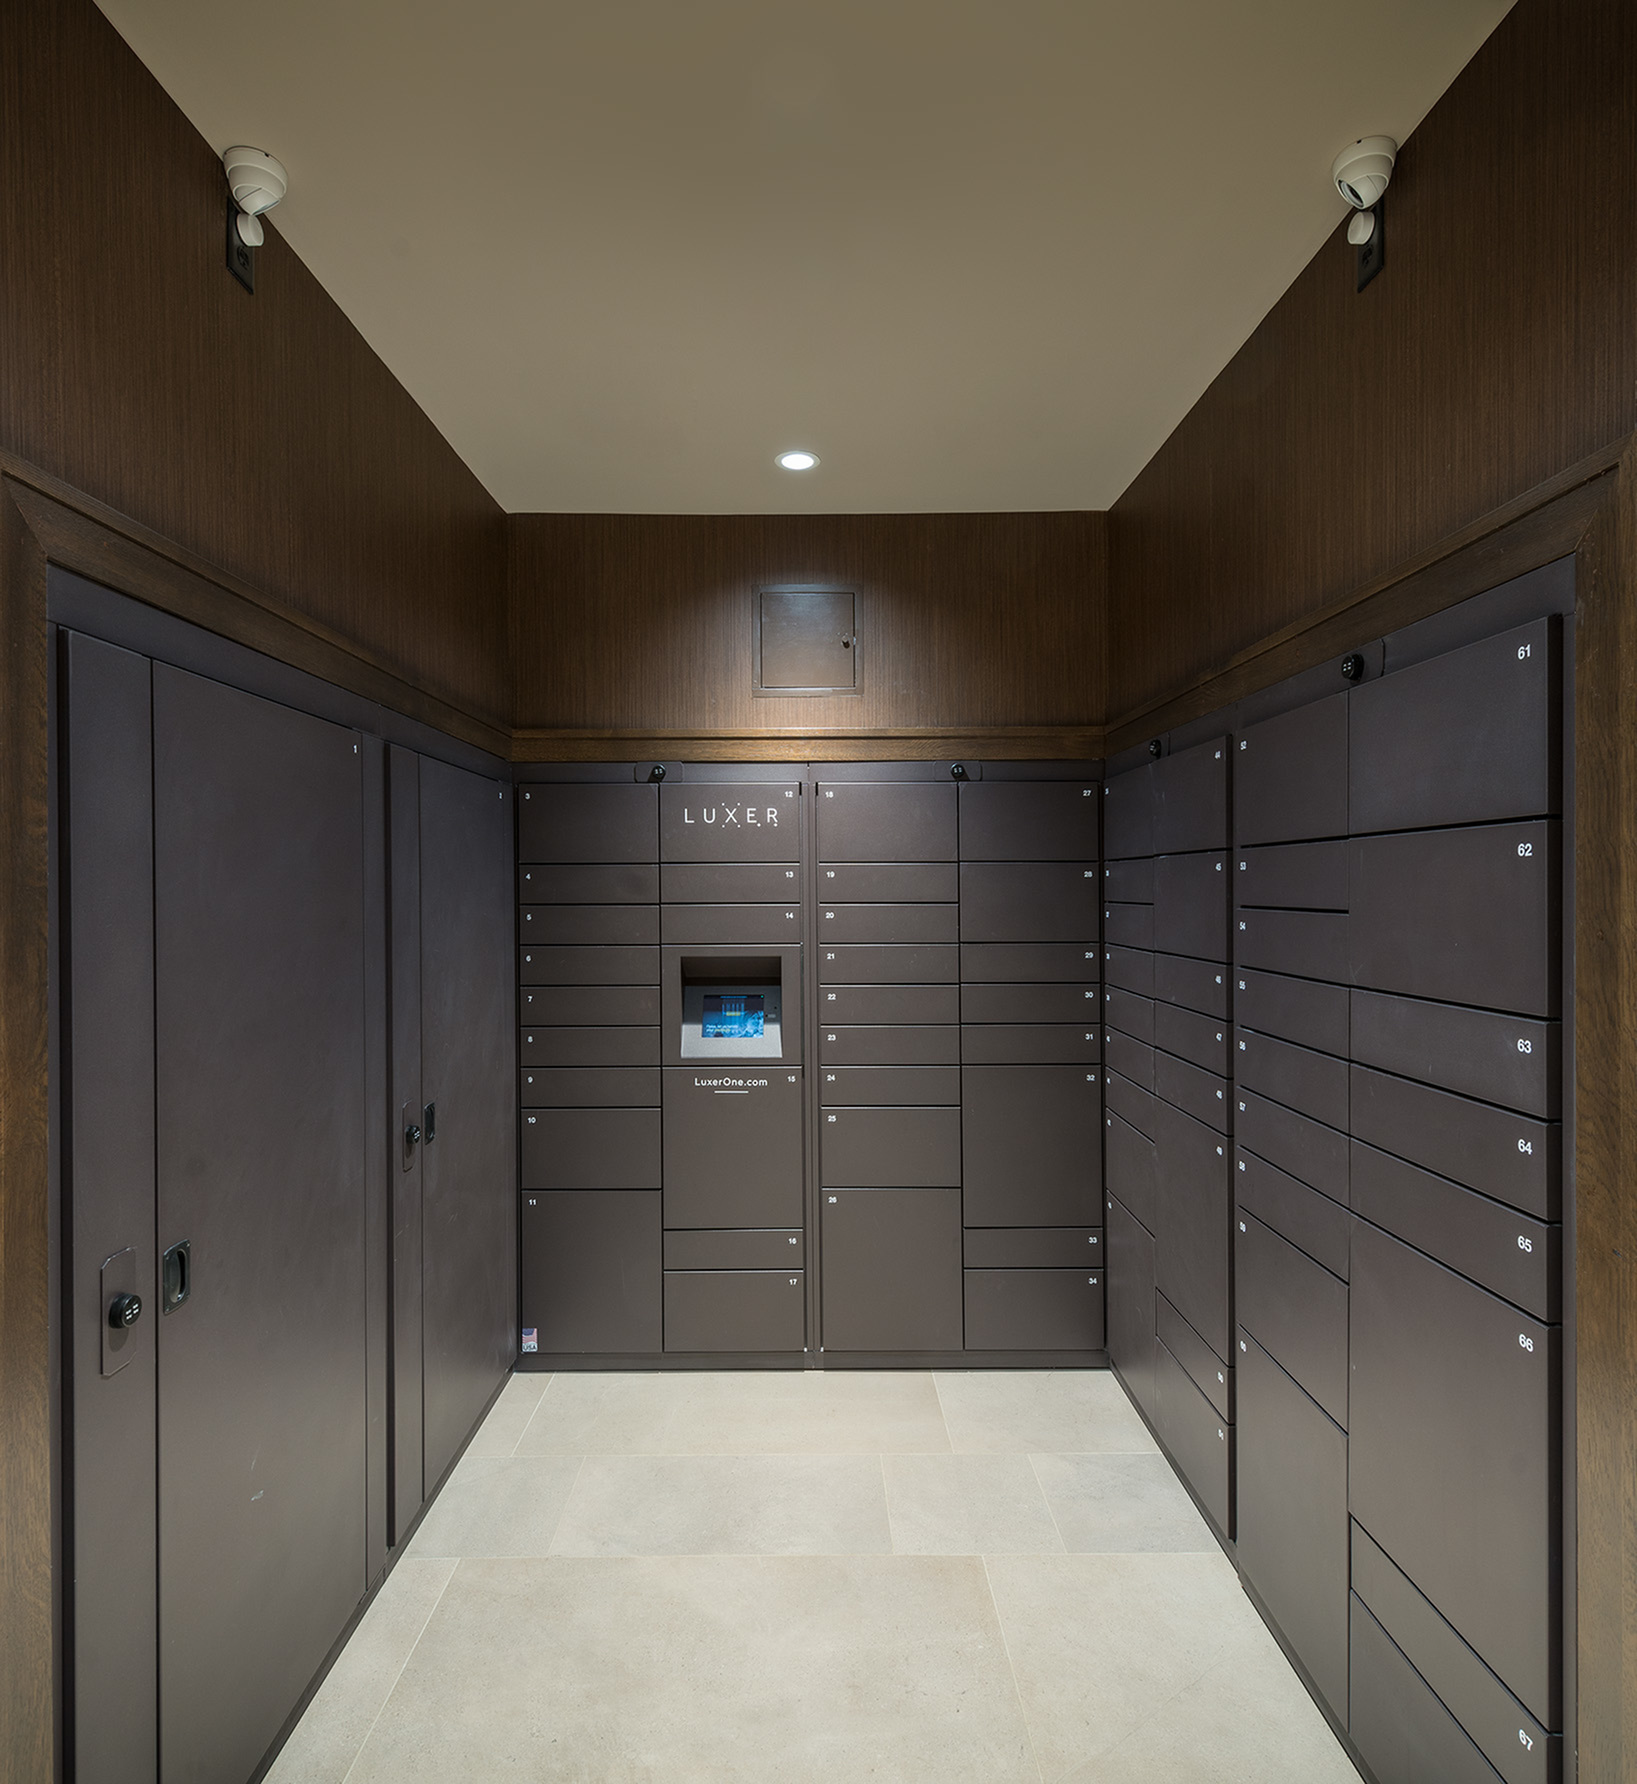 Image of LuxerOne package locker system for Hanover at Andover